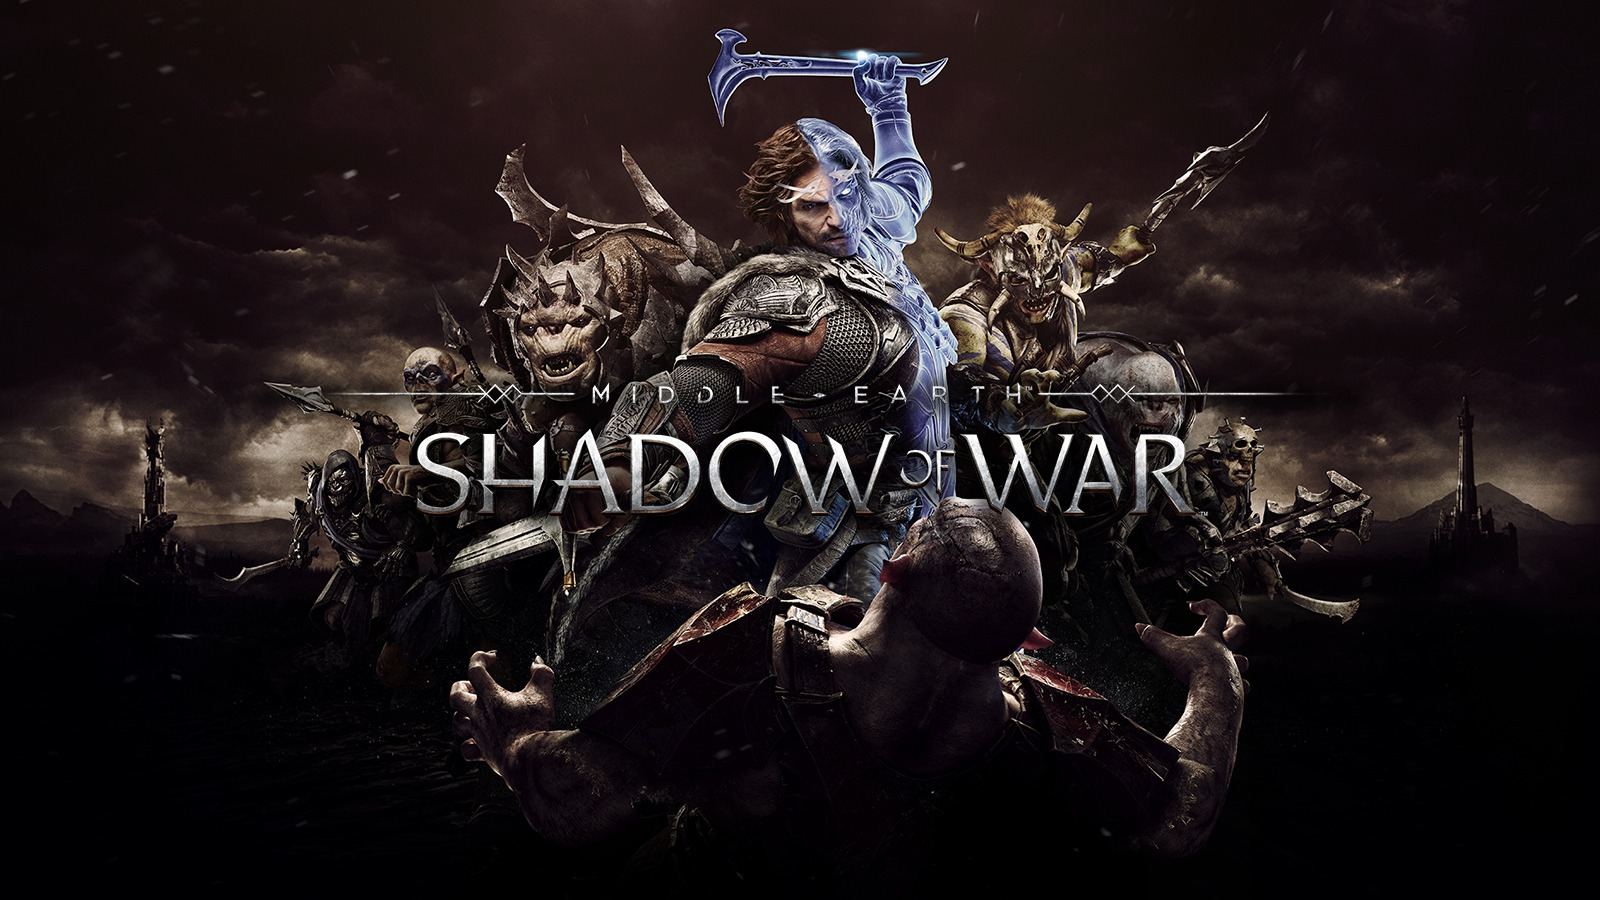 Best Games Like Skyrim - Middle Earth: Shadow of Earth